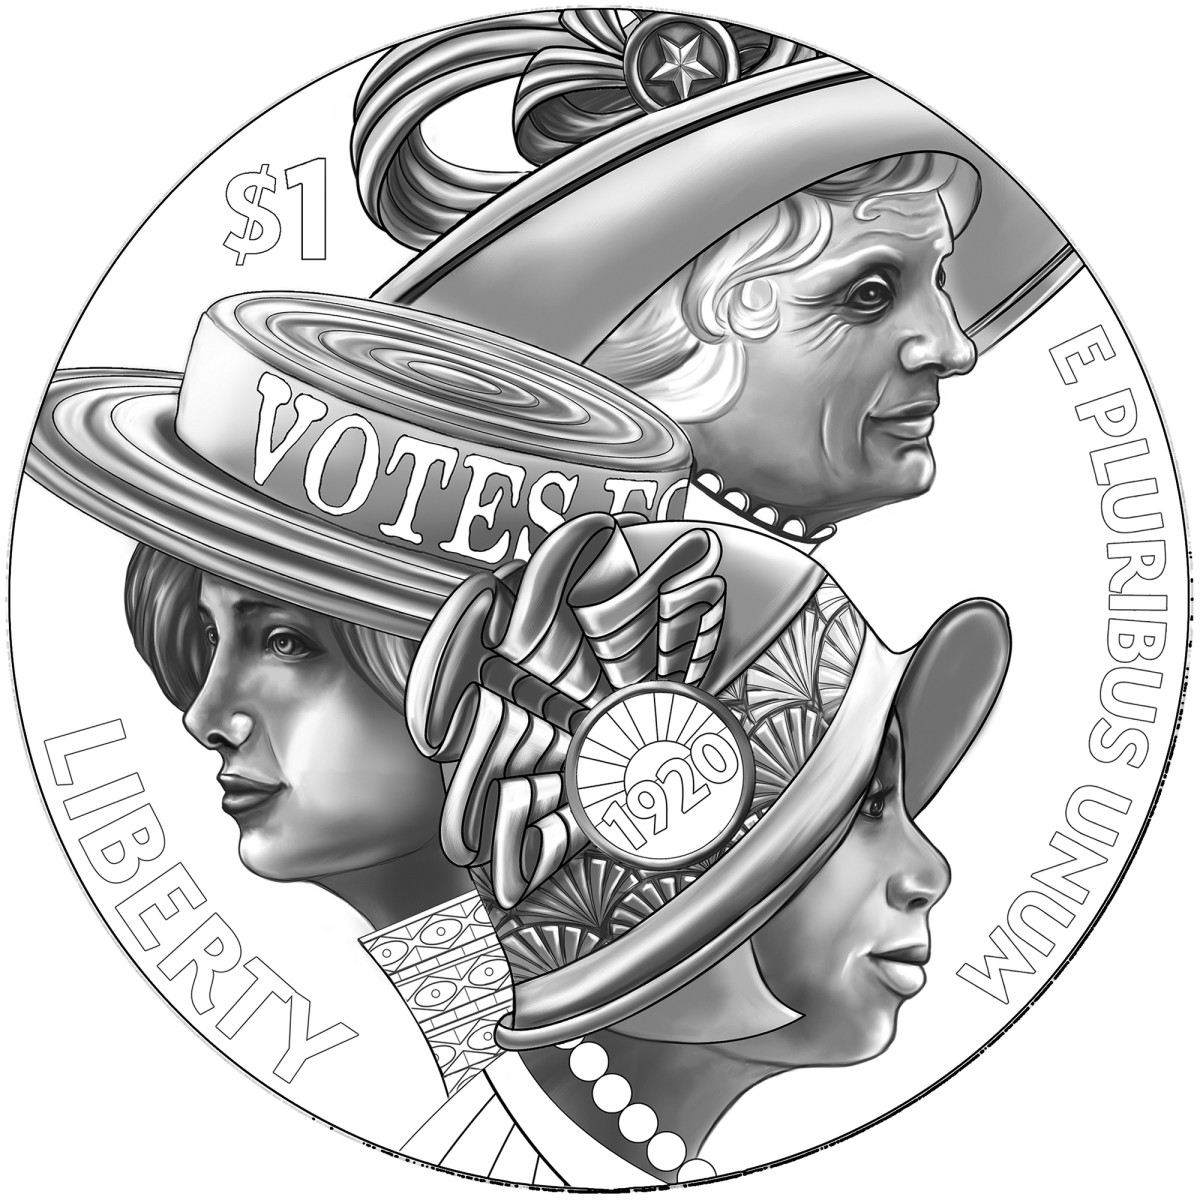 Line art for the obverse of the new silver dollar commemorating the centennial of women's suffrage. (All images courtesy U.S. Mint)